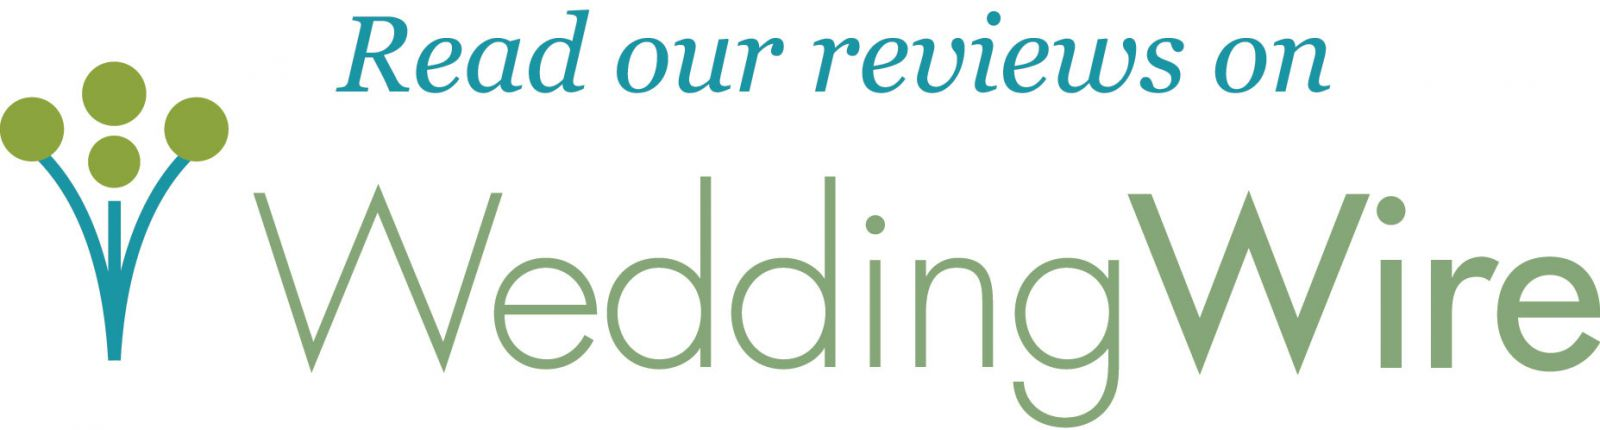 WeddingWire reviews graphic